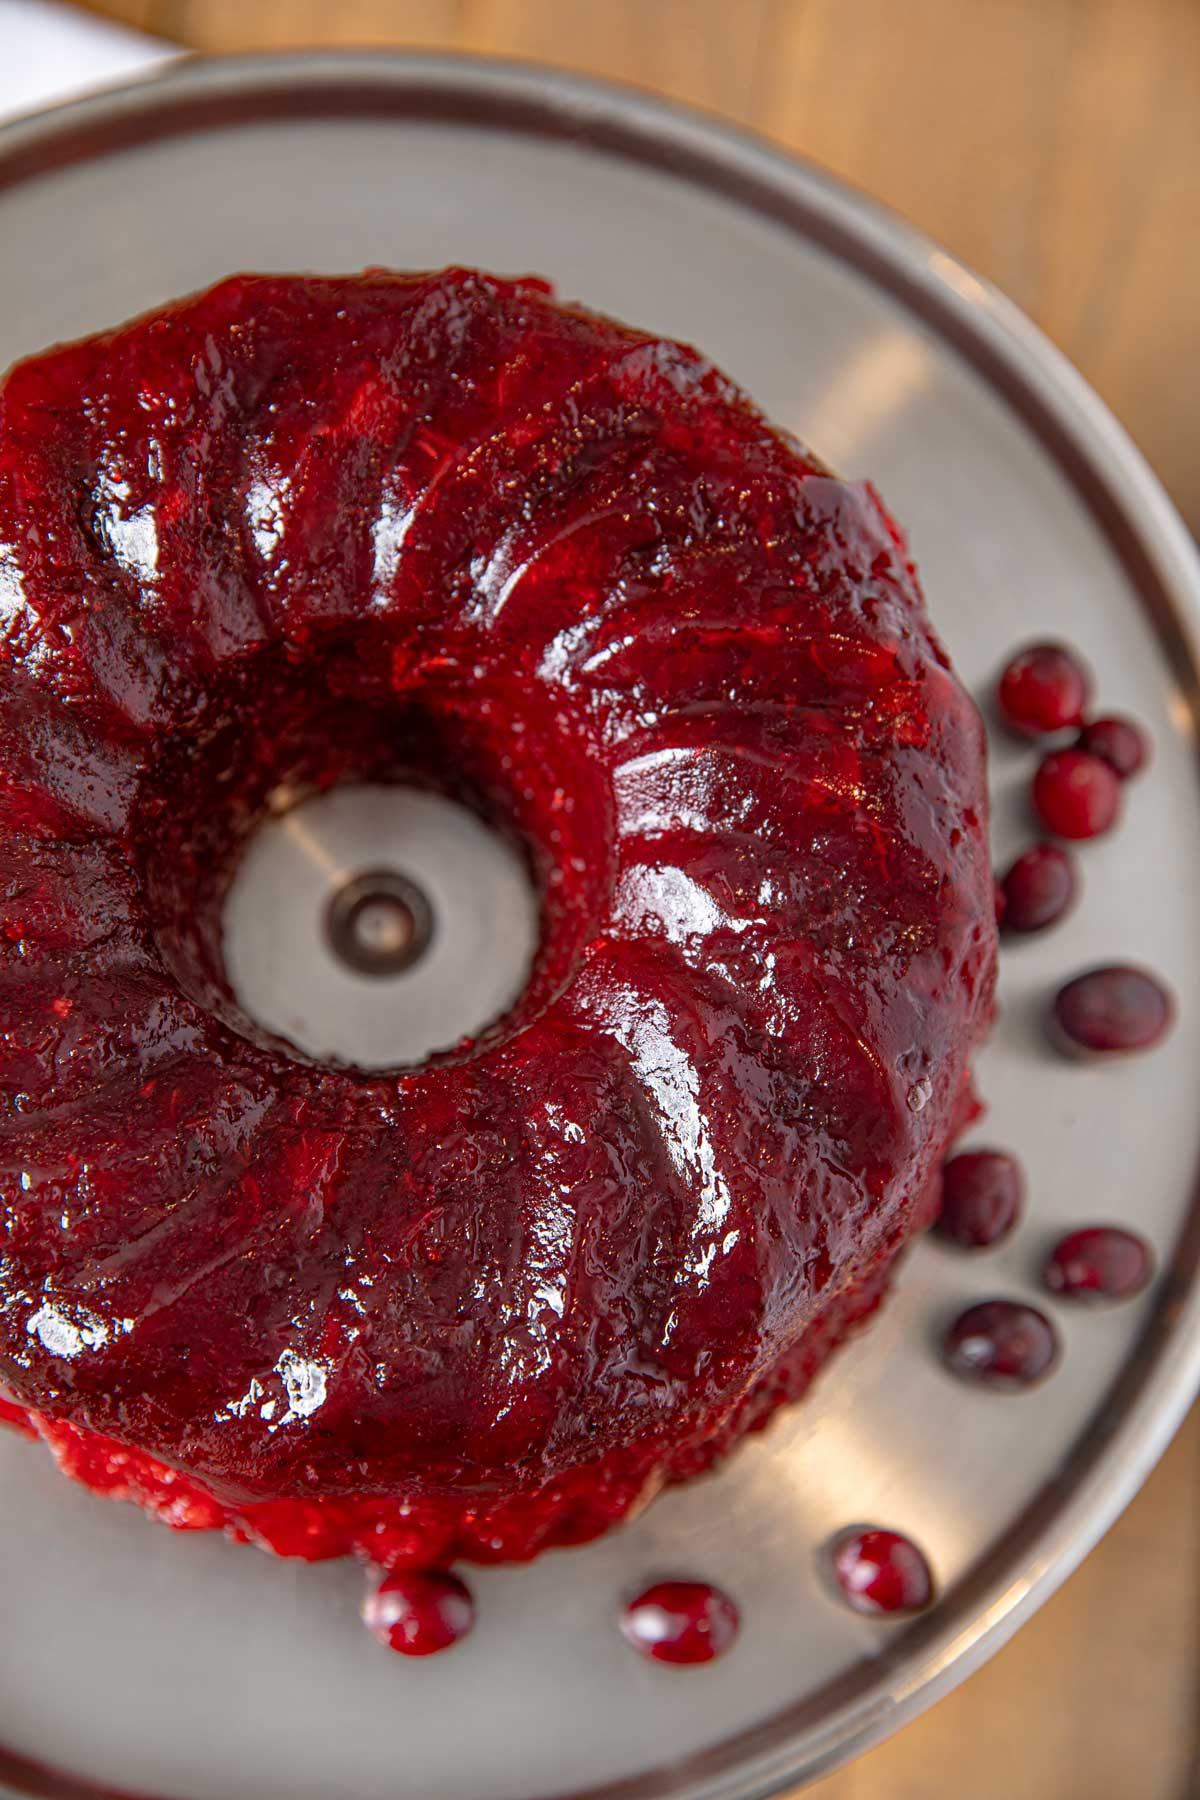 Cranberry Jello Mold with Pineapple and Orange